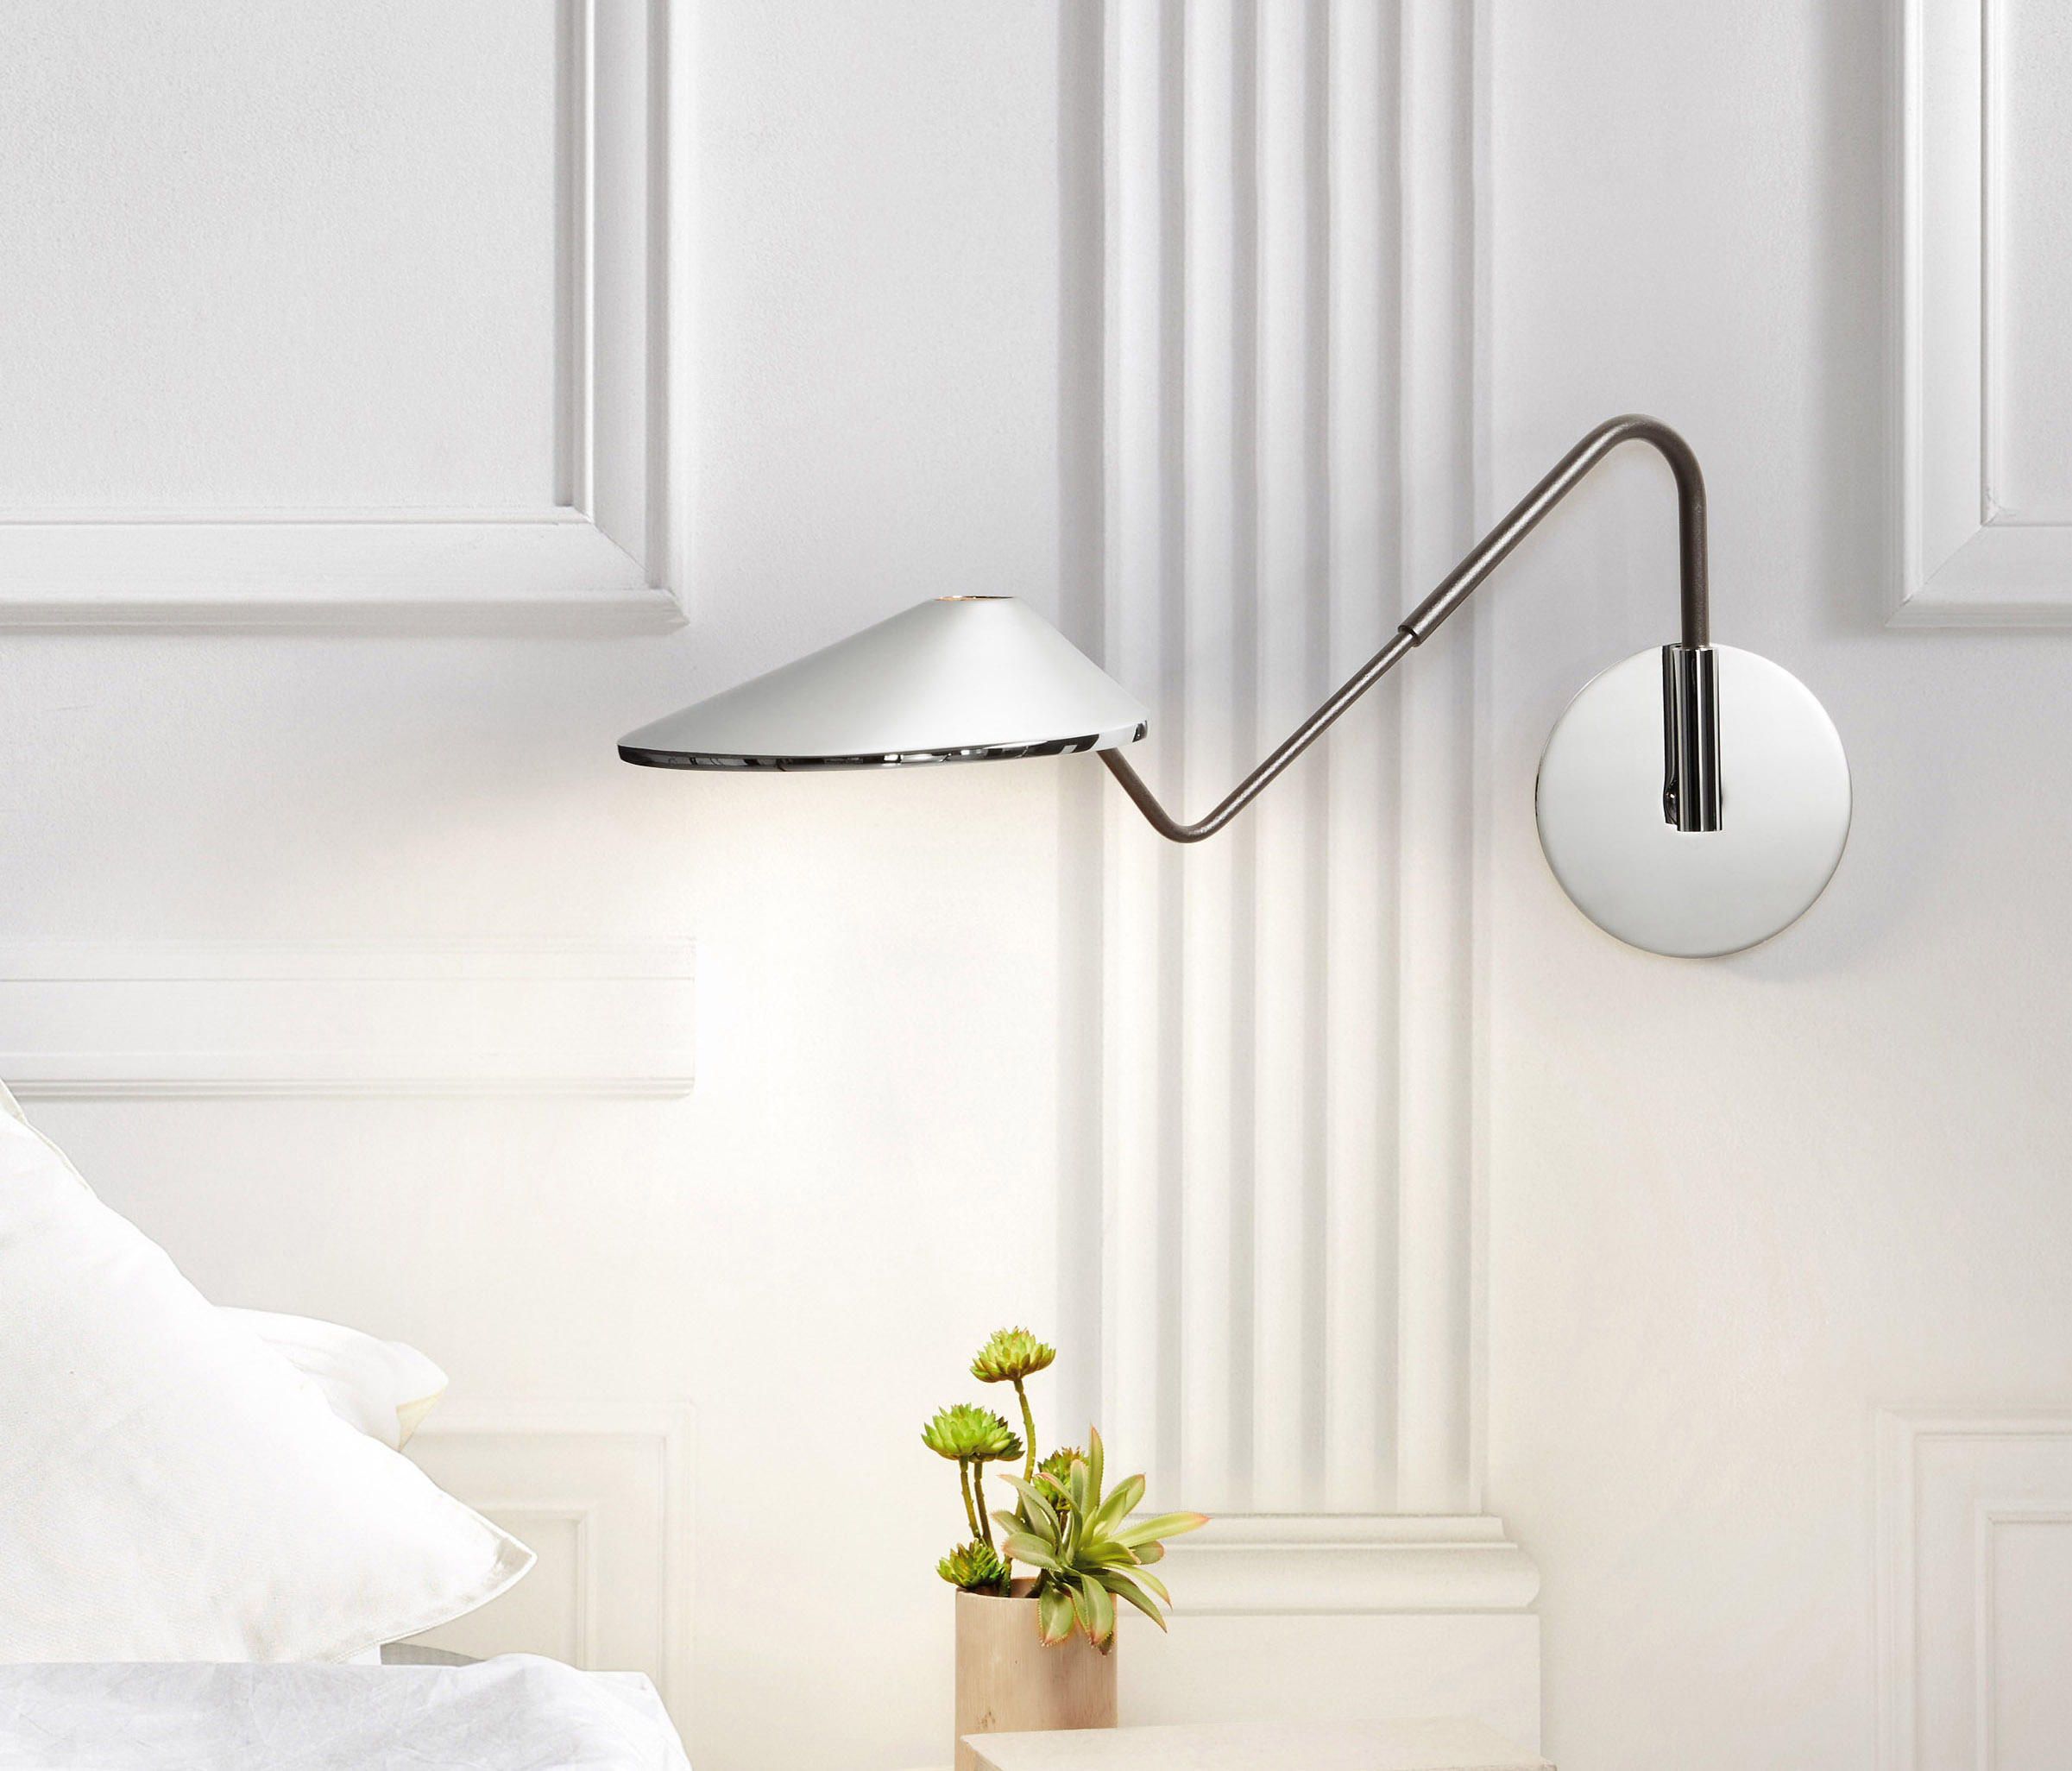 NÓN LÁ A/03 - Wall lights from BOVER | Architonic on Non Lighting Sconces id=16789